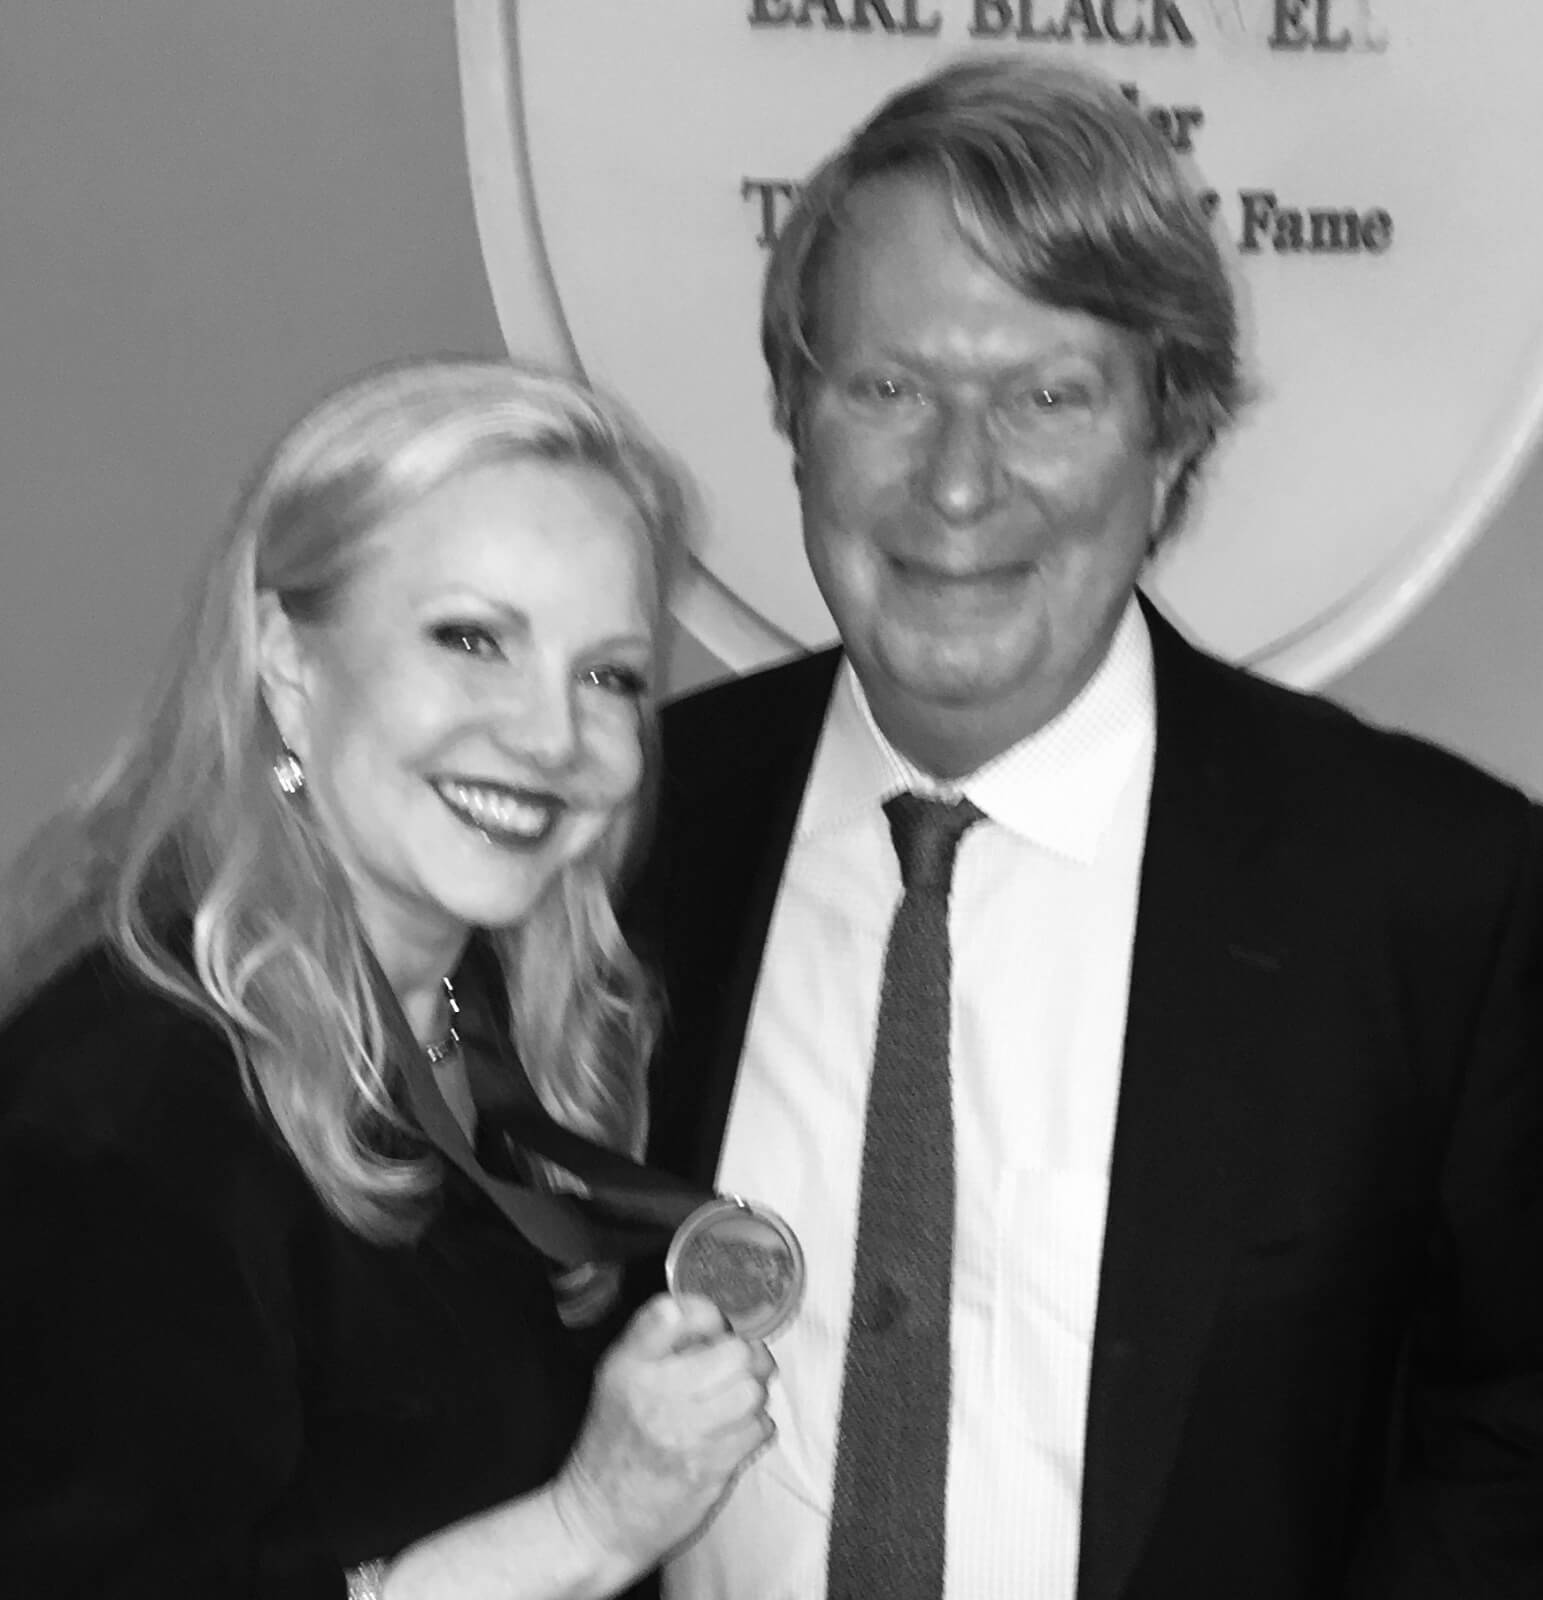 Susan Stroman with Andre Bishop, Artistic Director of Lincoln Center Theater, after being inducted into the Theater Hall of Fame. She is holding the award.